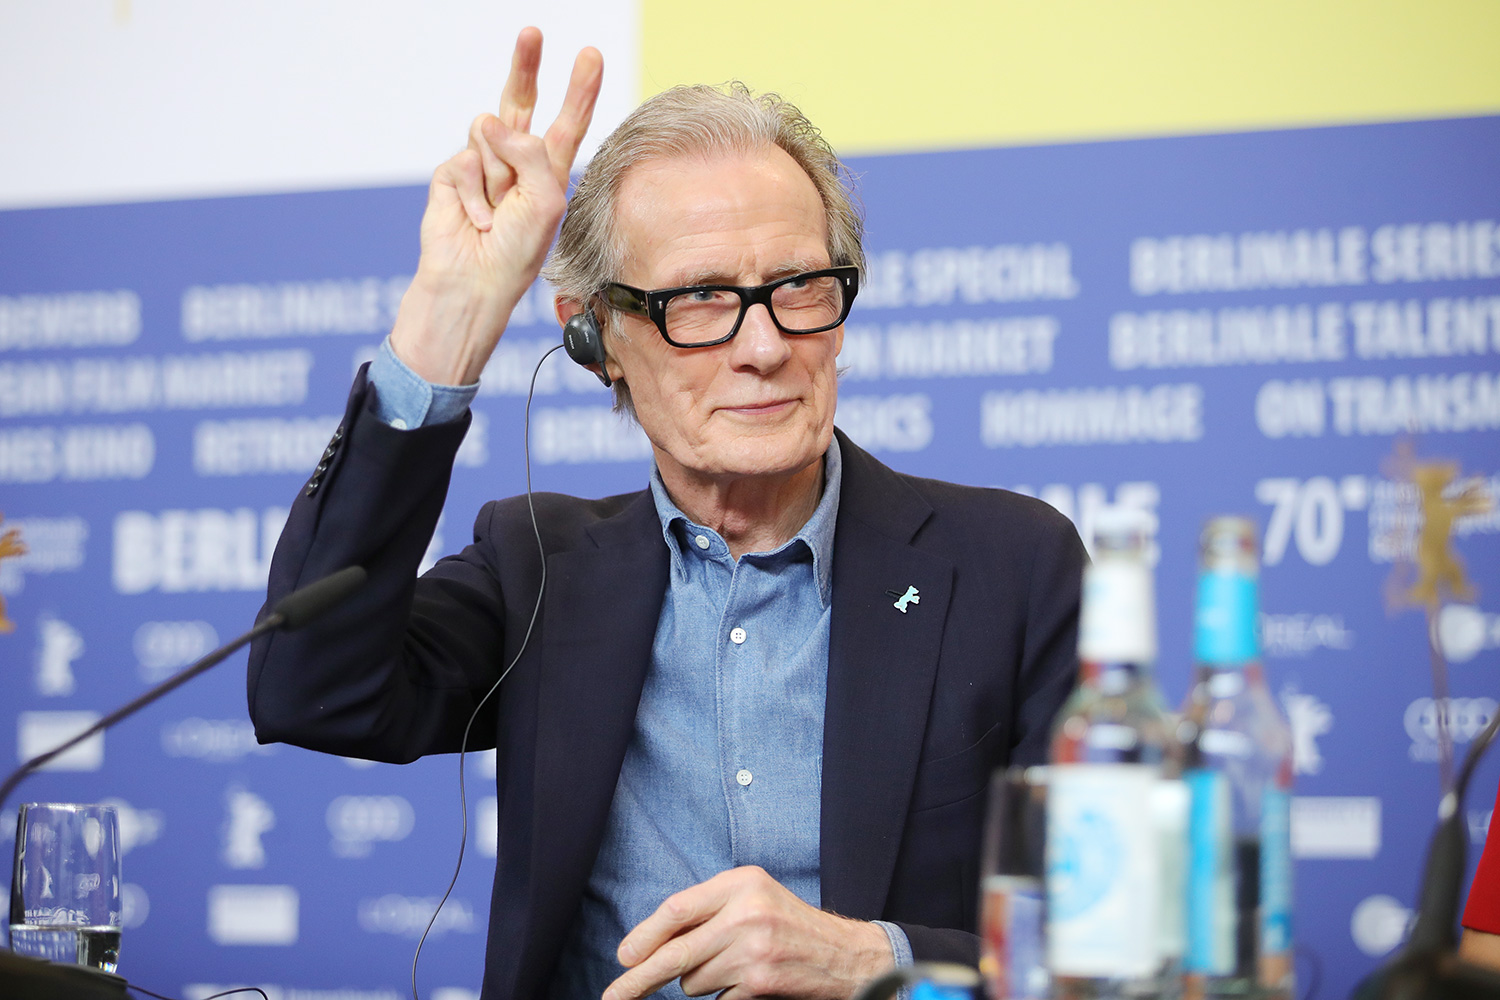 """Bill Nighy attends the """"Minamata"""" press conference during the 70th Berlinale International Film Festival Berlin at Grand Hyatt Hotel on February 21, 2020 in Berlin, Germany"""